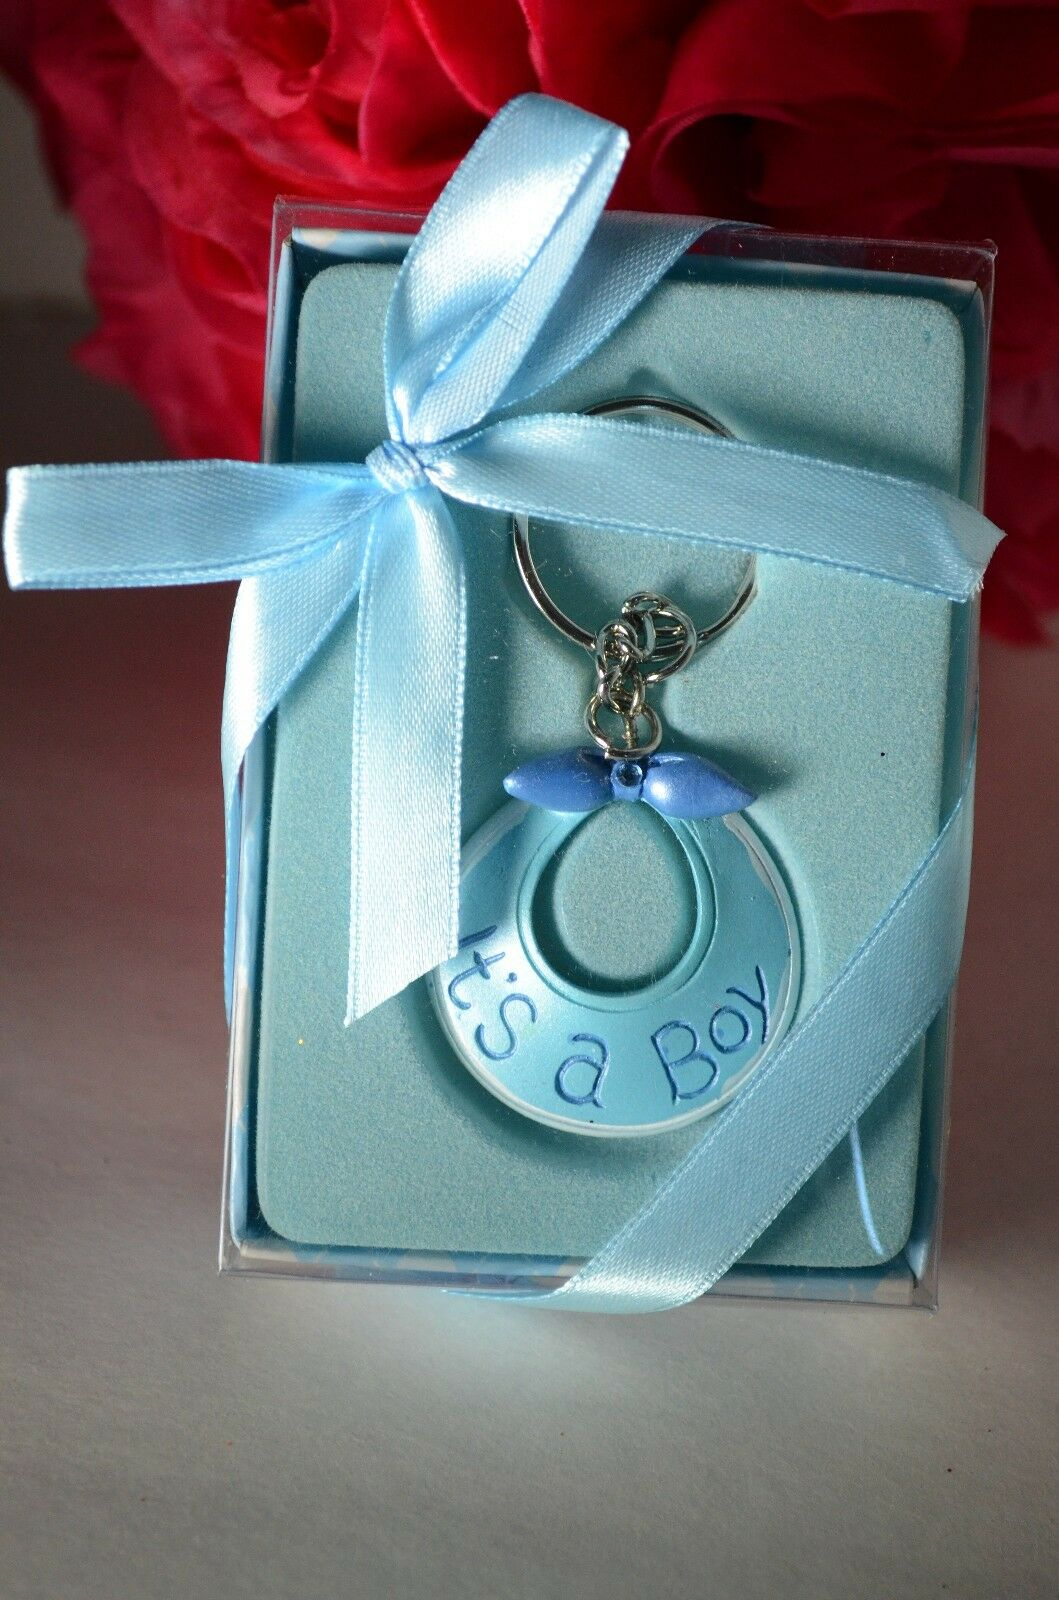 12 Pcs Baby Shower Party Favors Keychains Its A Boy Blue Bib